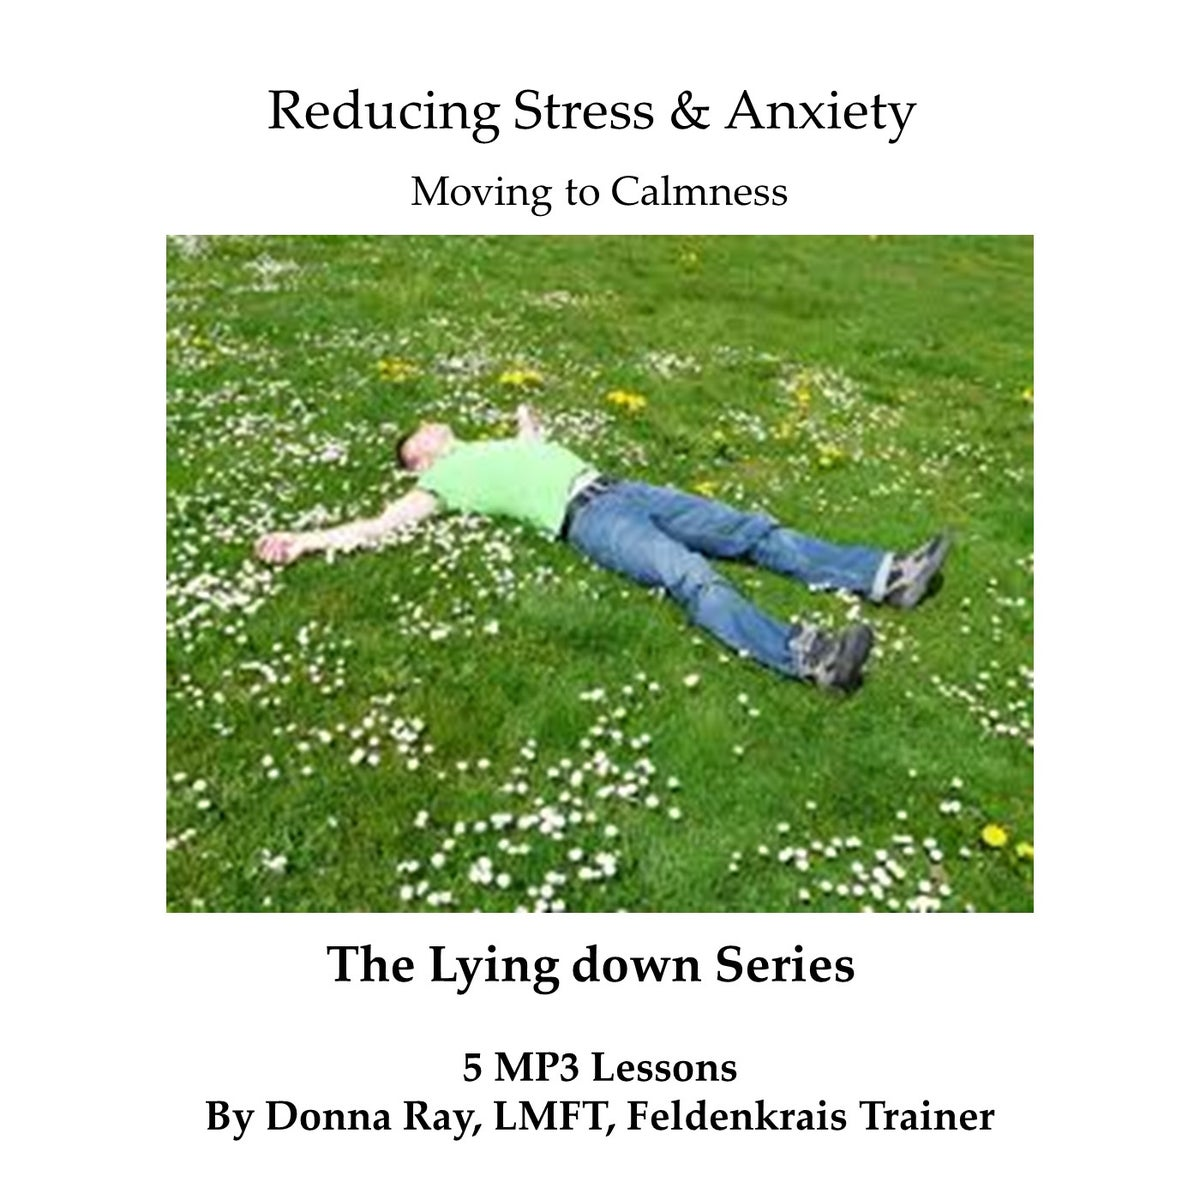 Image of Reducing Stress & Anxiety - The Lying Down Series